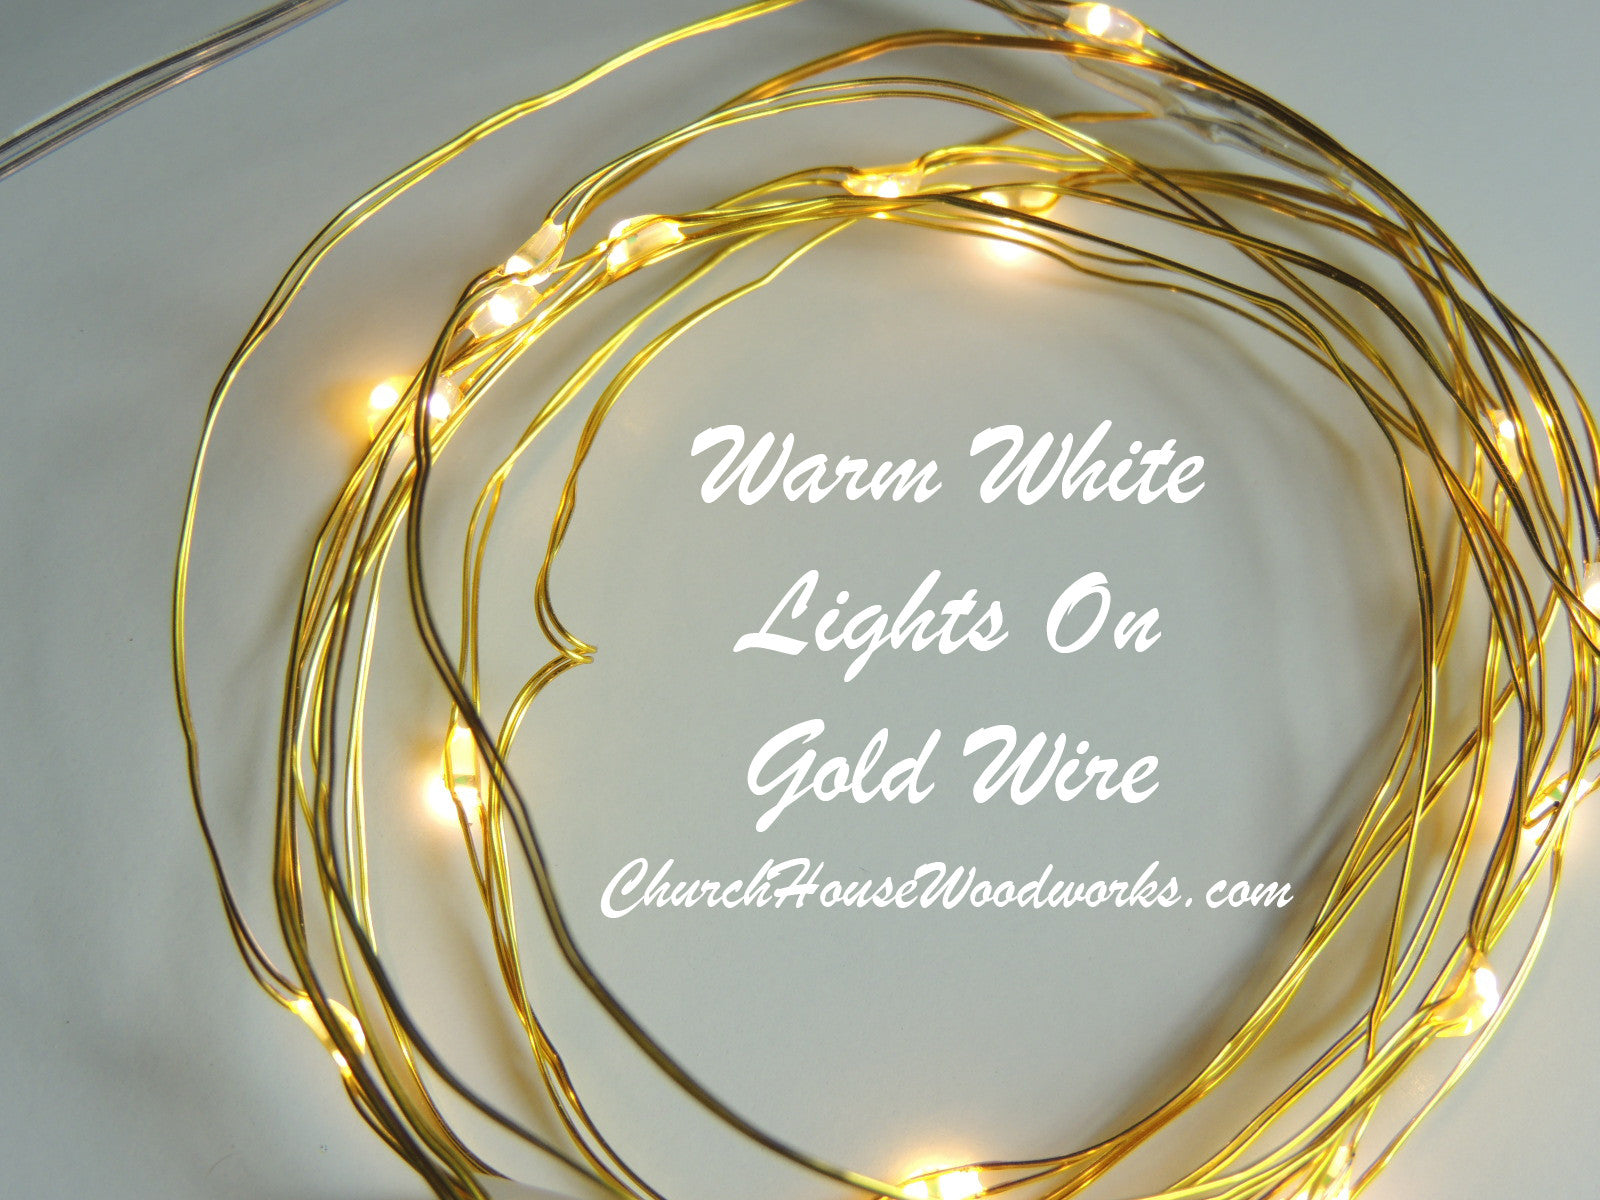 Warm White on Gold Wire Battery Fairy Lights LED Battery Operated Rustic Wedding Lights Bedroom Lights & Warm White Lights On Gold Wire LED Battery Fairy Lights - Bedroom ... azcodes.com